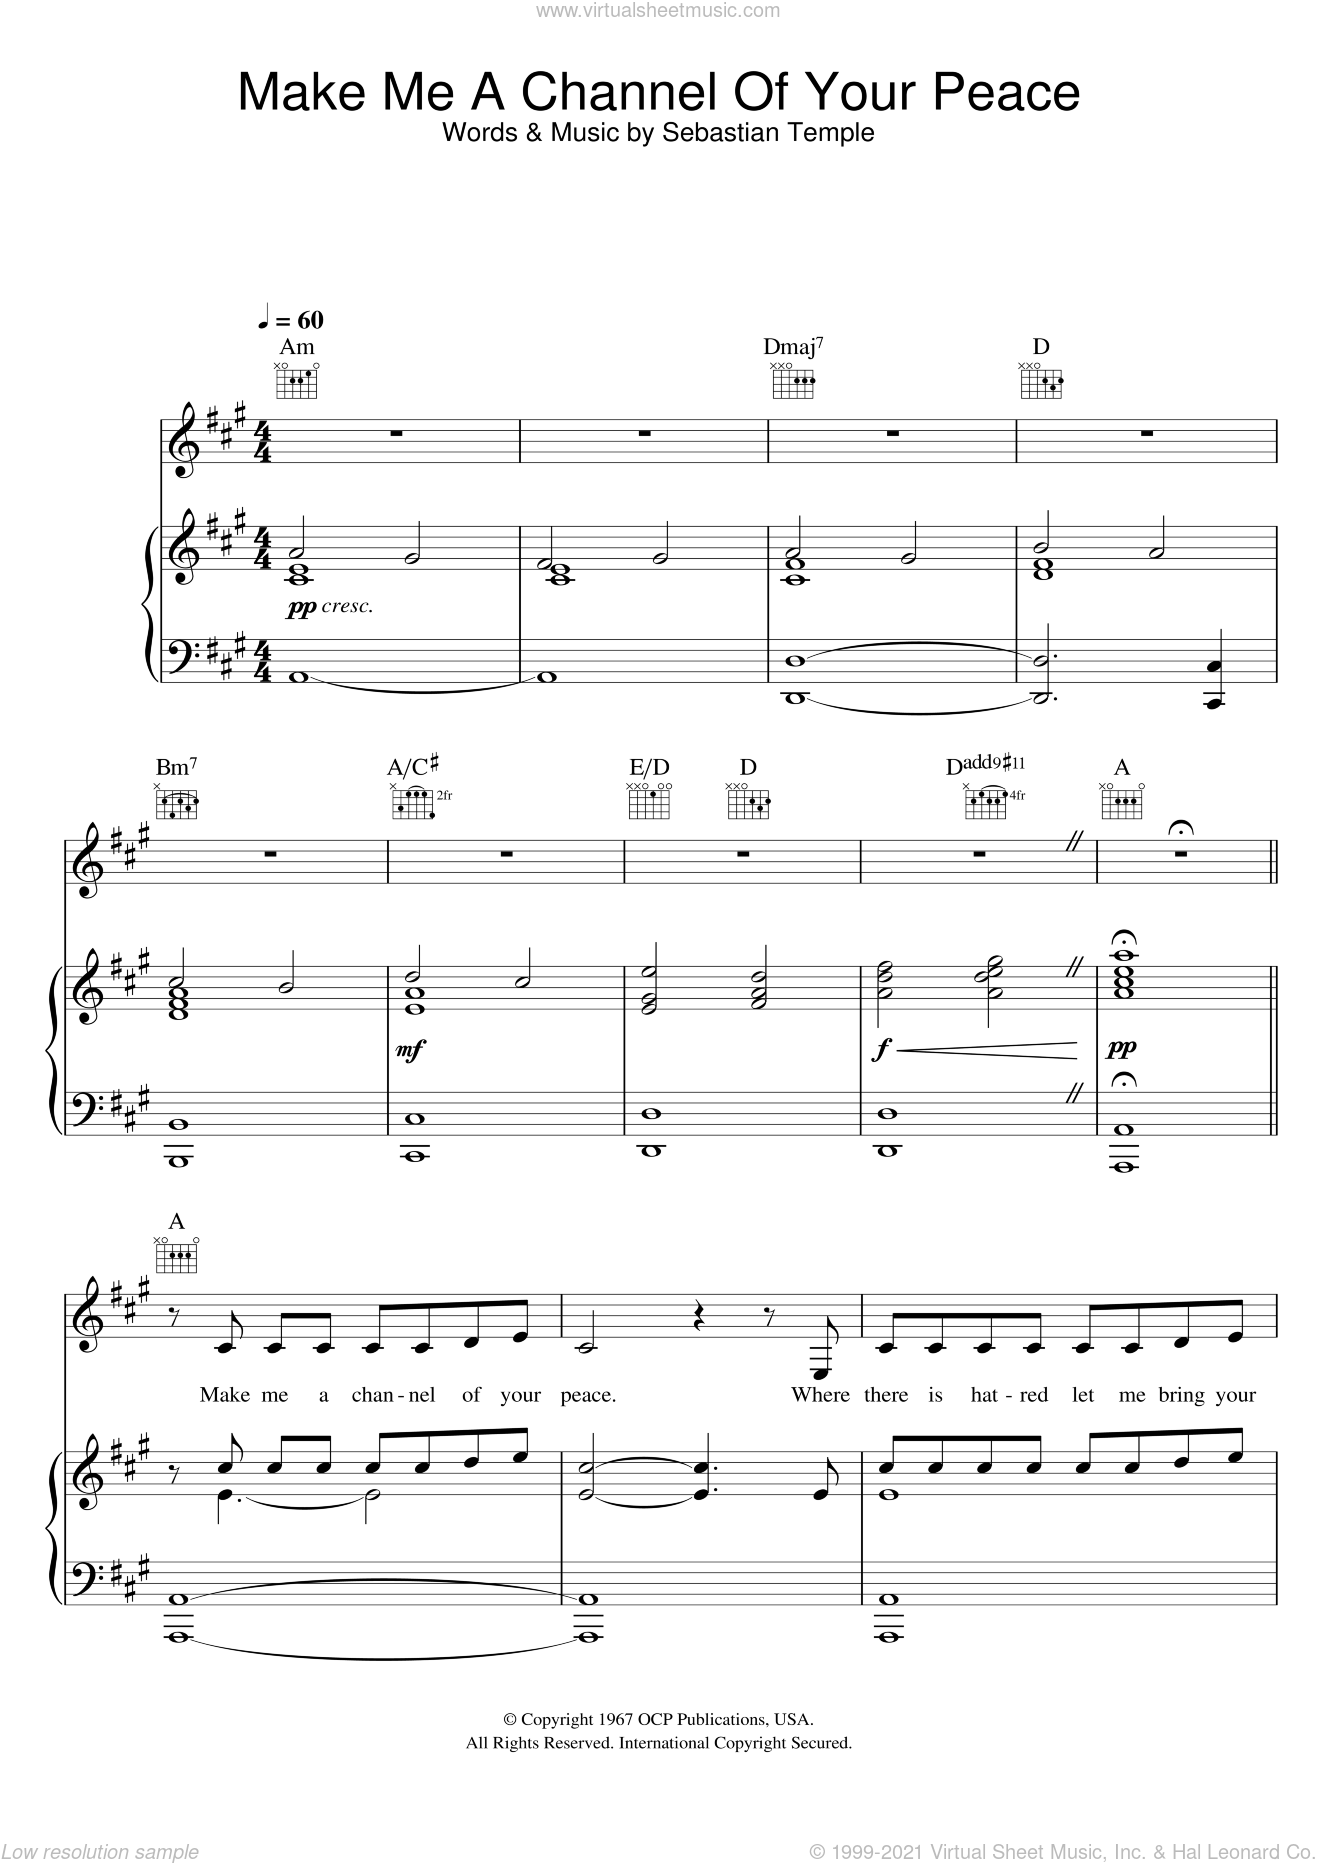 Make Me A Channel Of Your Peace (Prayer Of St. Francis) sheet music for voice, piano or guitar by Susan Boyle and Sebastian Temple, intermediate skill level